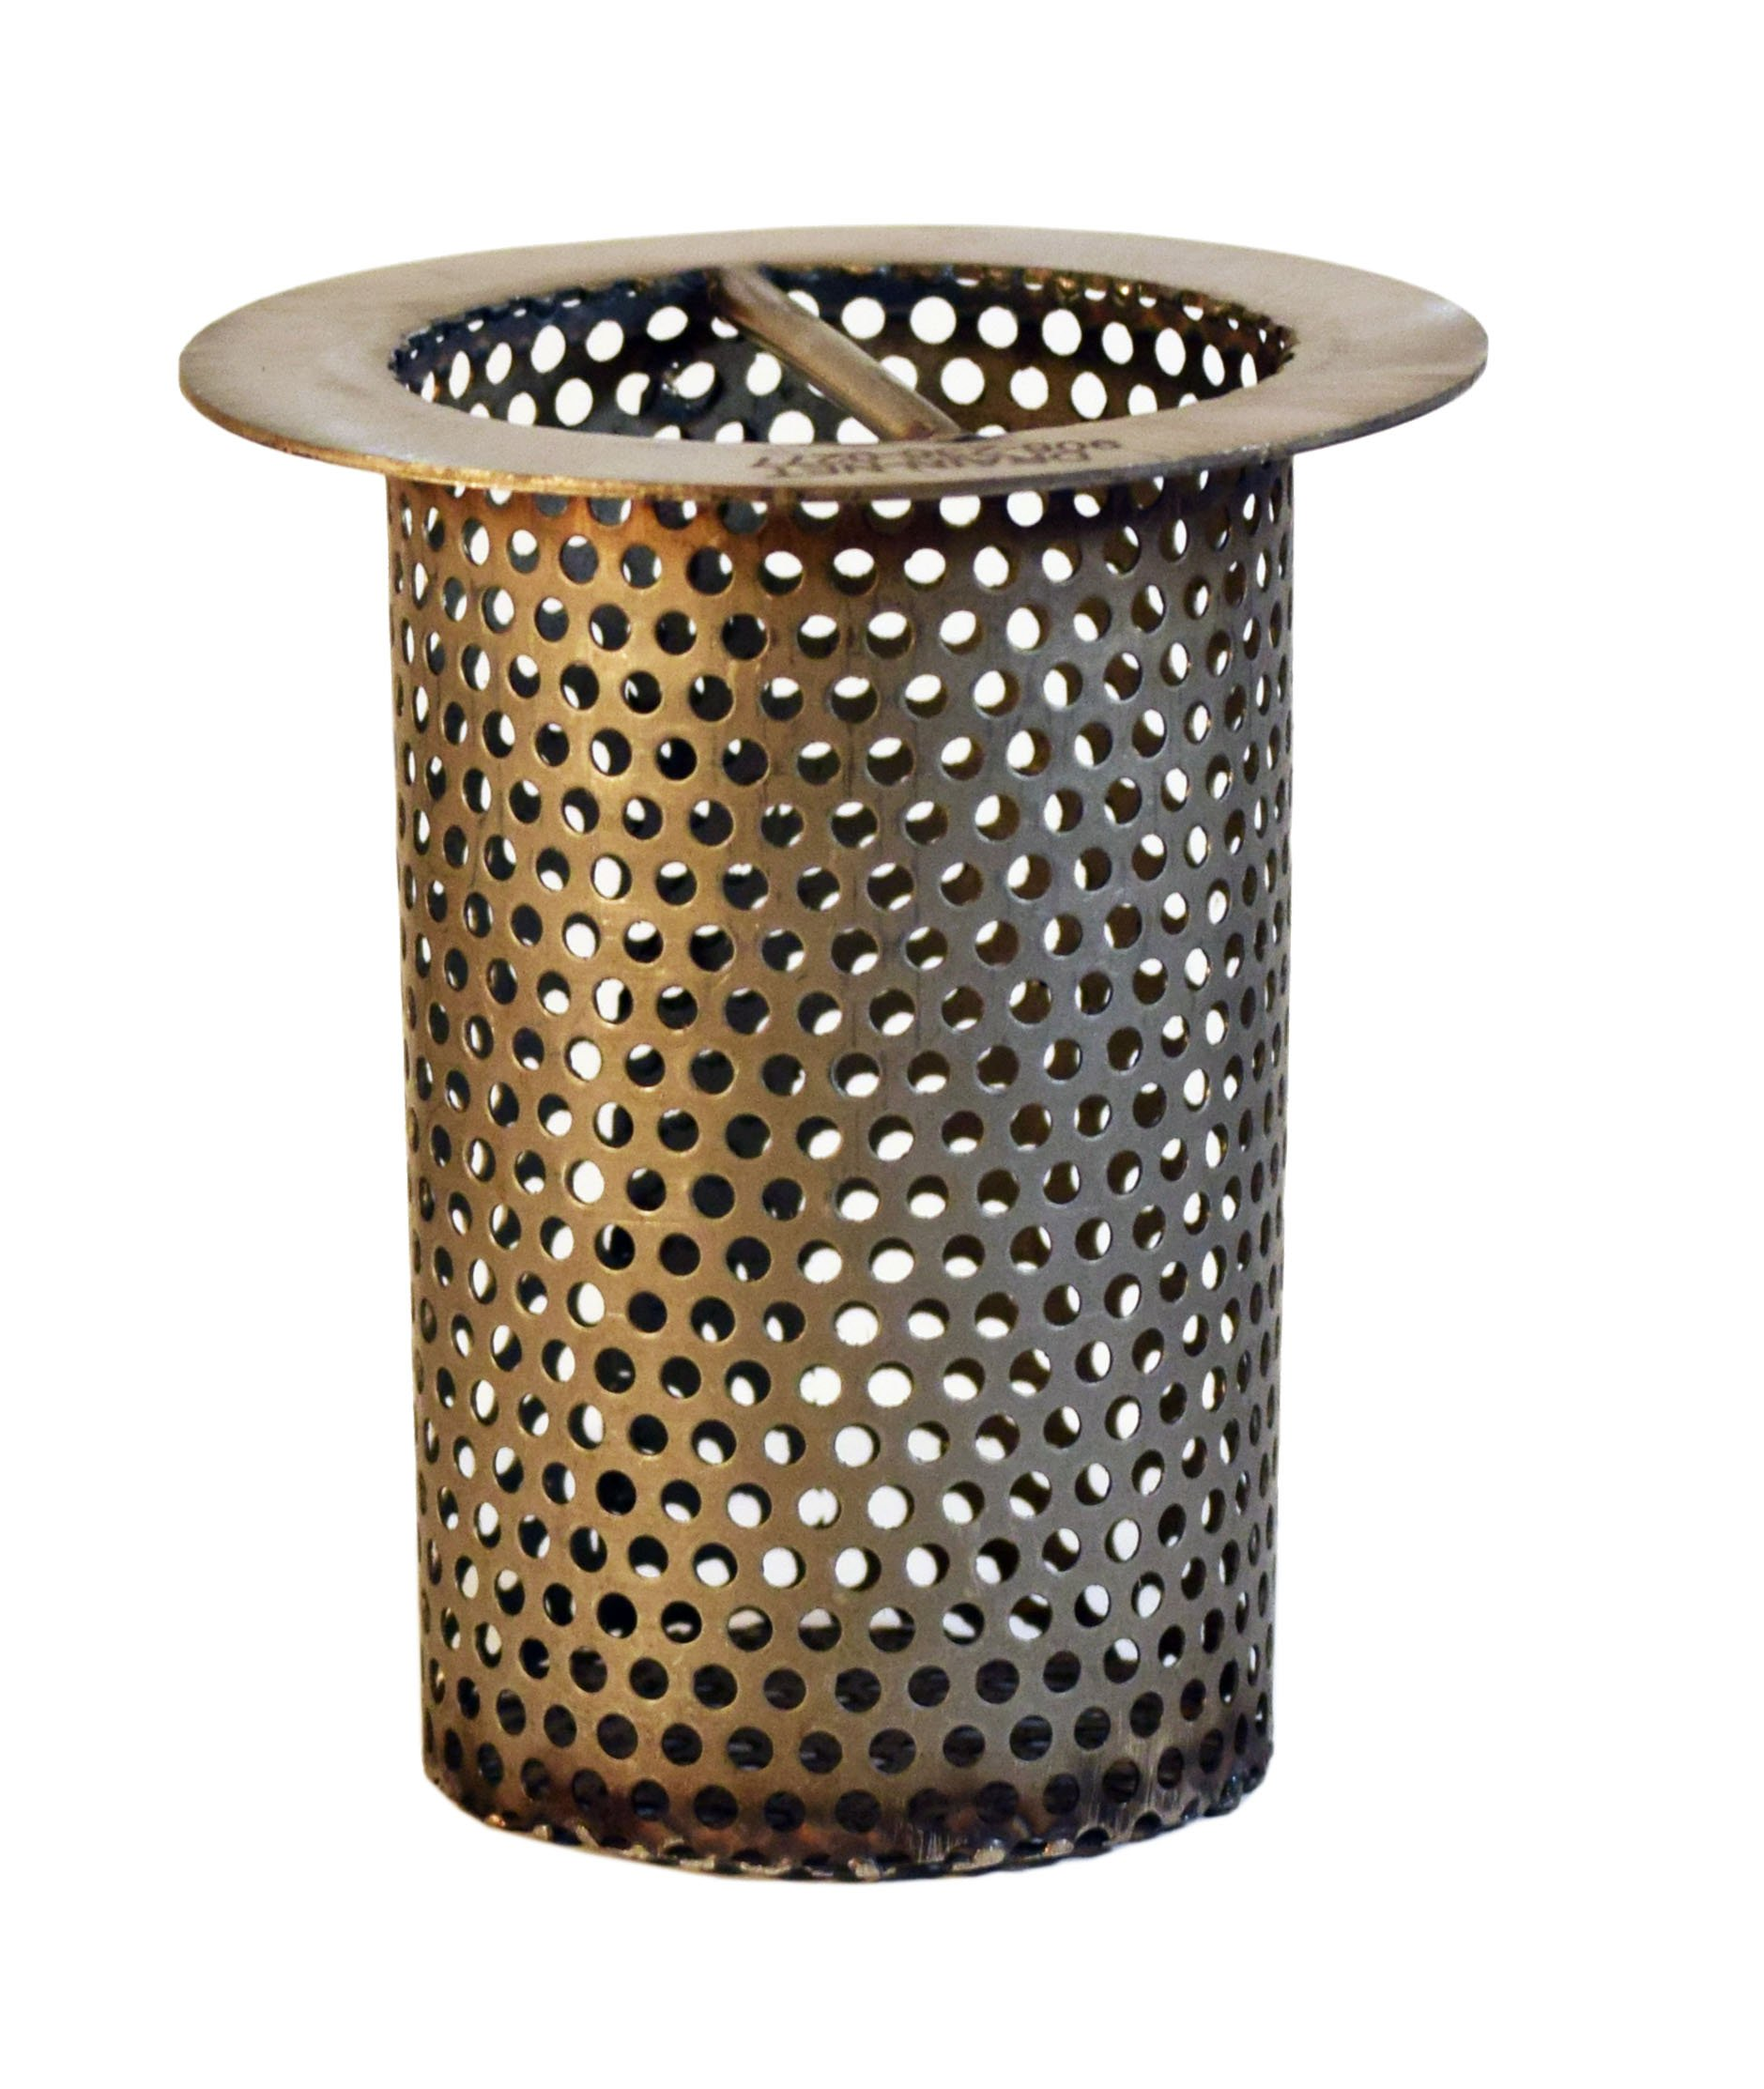 3'' Commercial Floor Drain Strainer, Perforated Stainless Steel, 4'' tall by Drain-Net